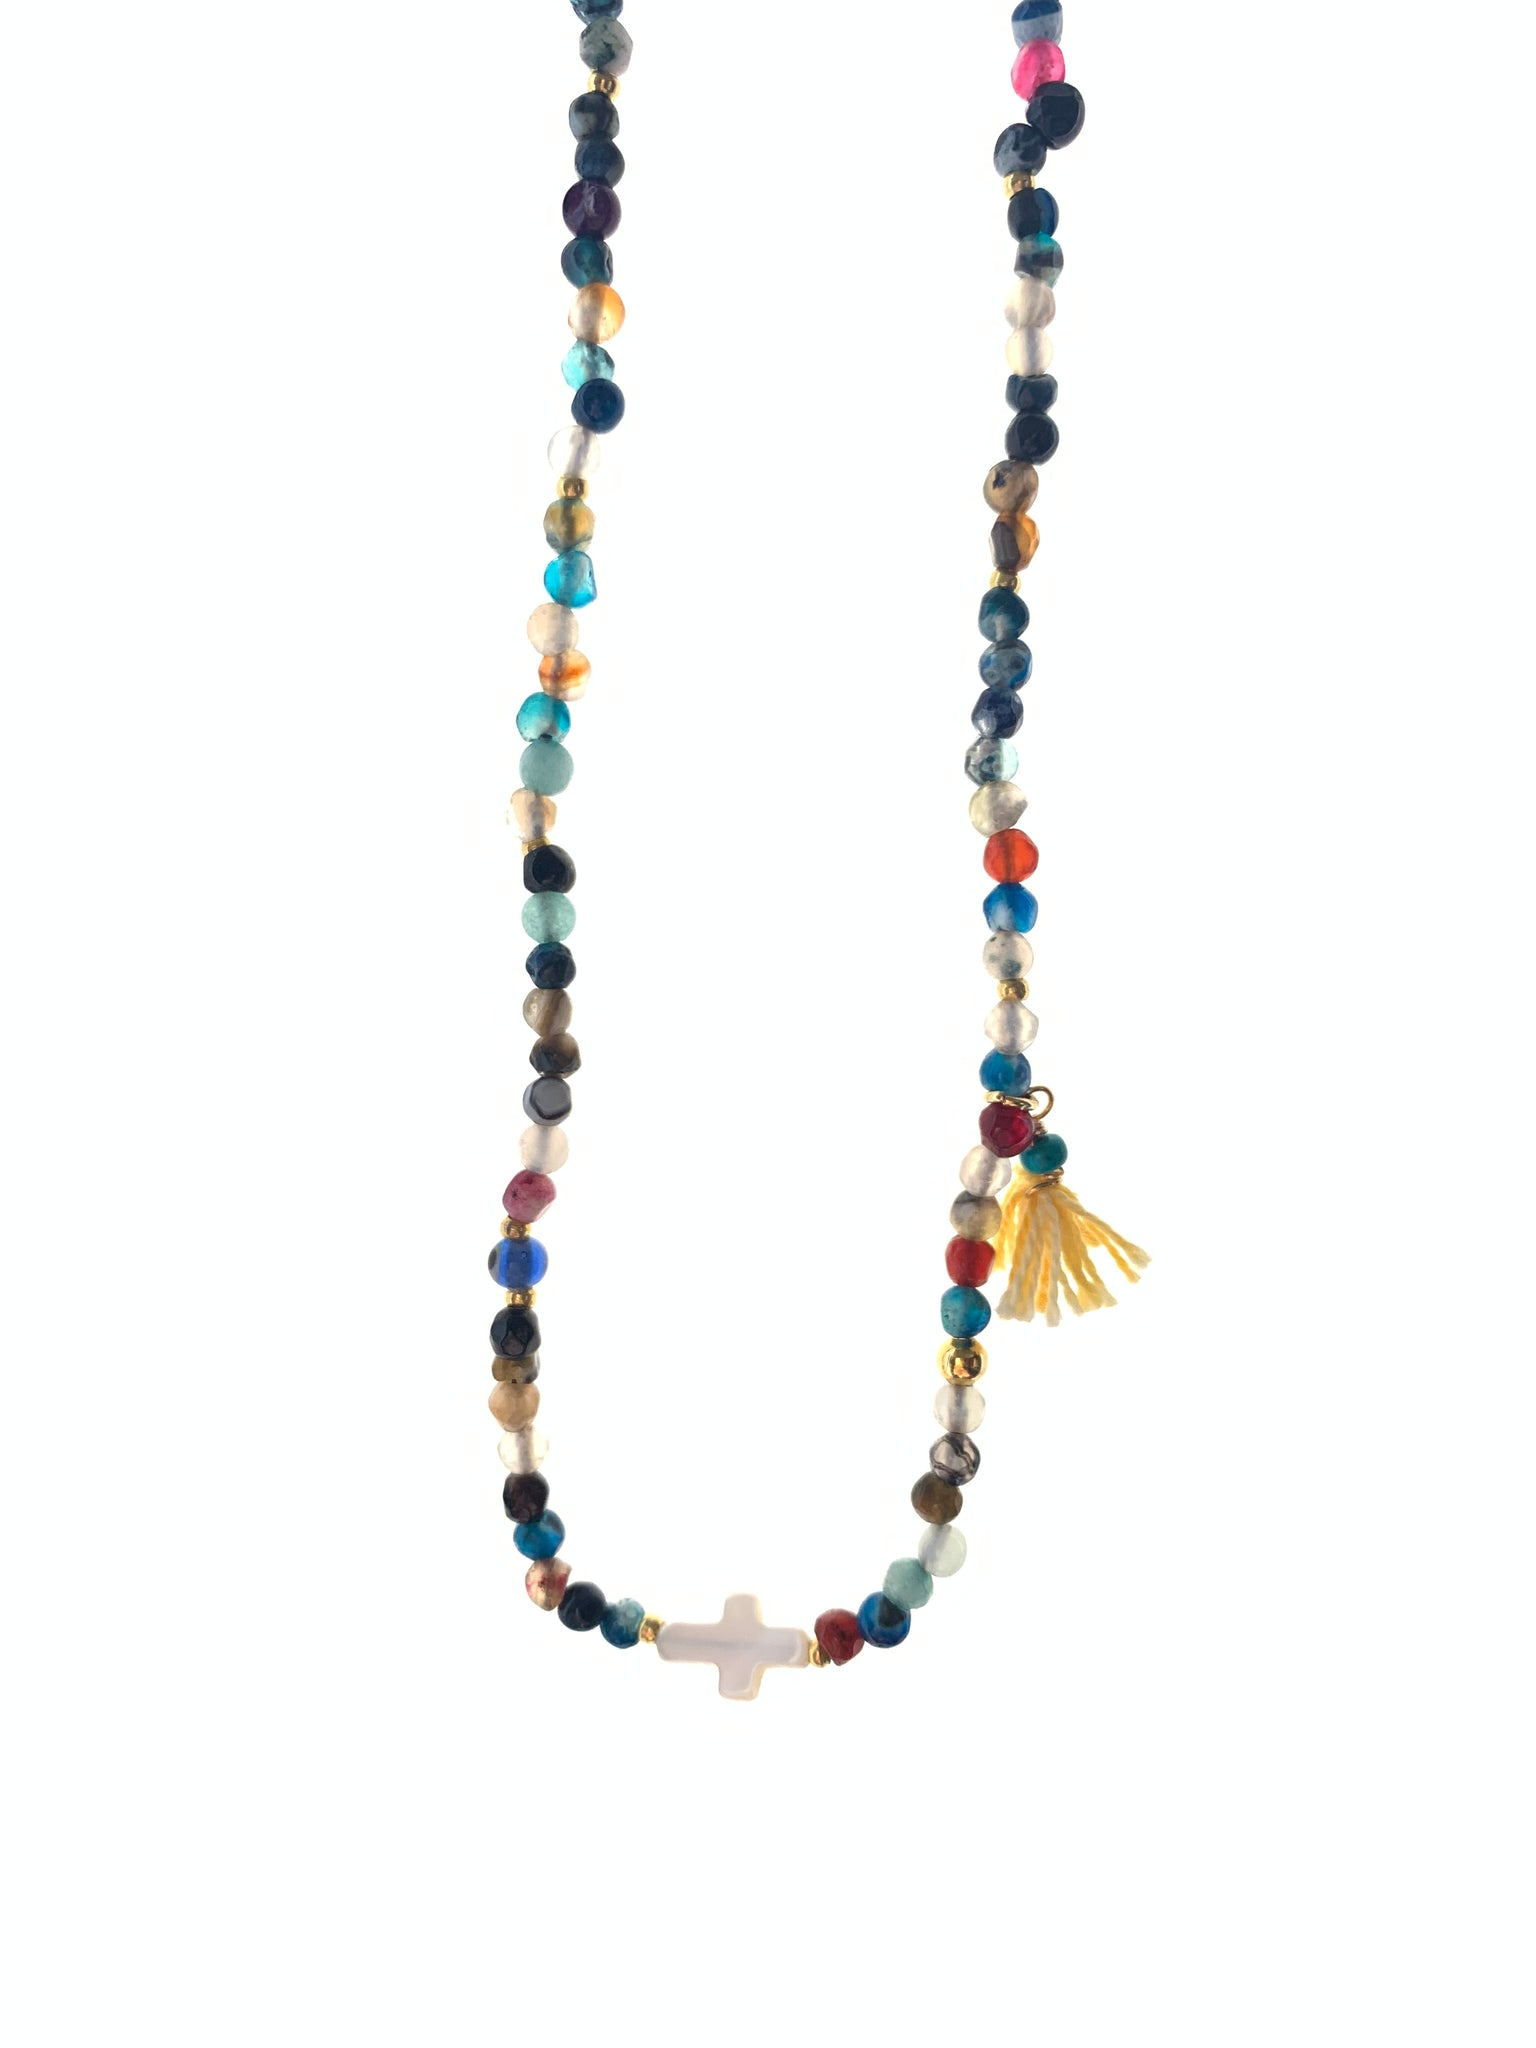 Dainty necklace Small coloured agate stones mother of pearl cross yellow tassel inamullumani